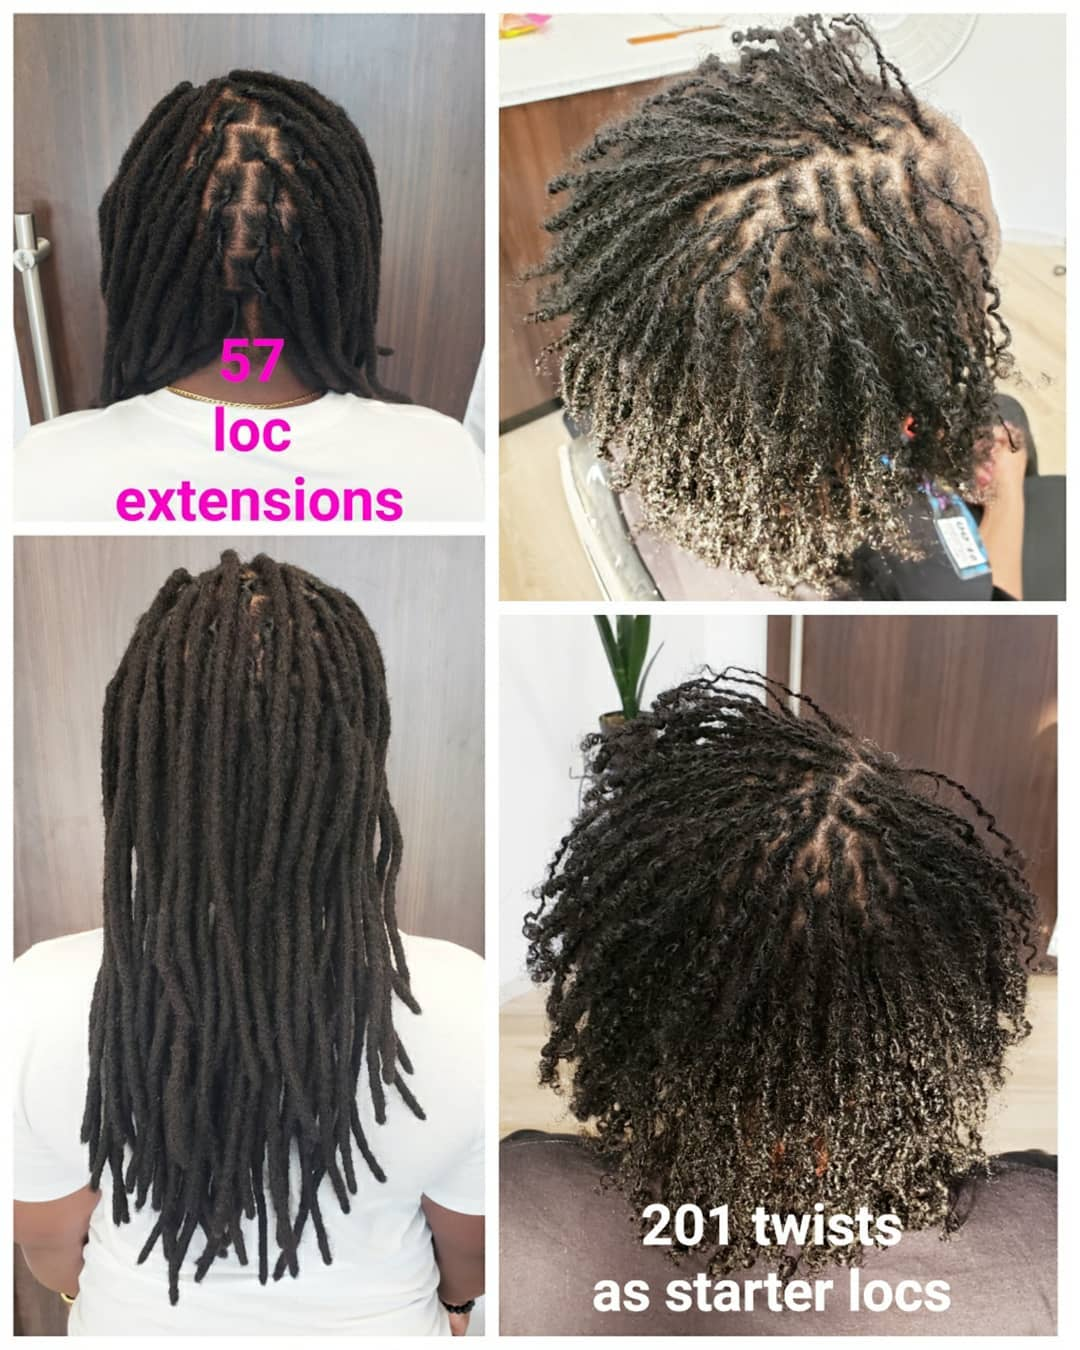 The fullest parting styles for Loc Extensions!